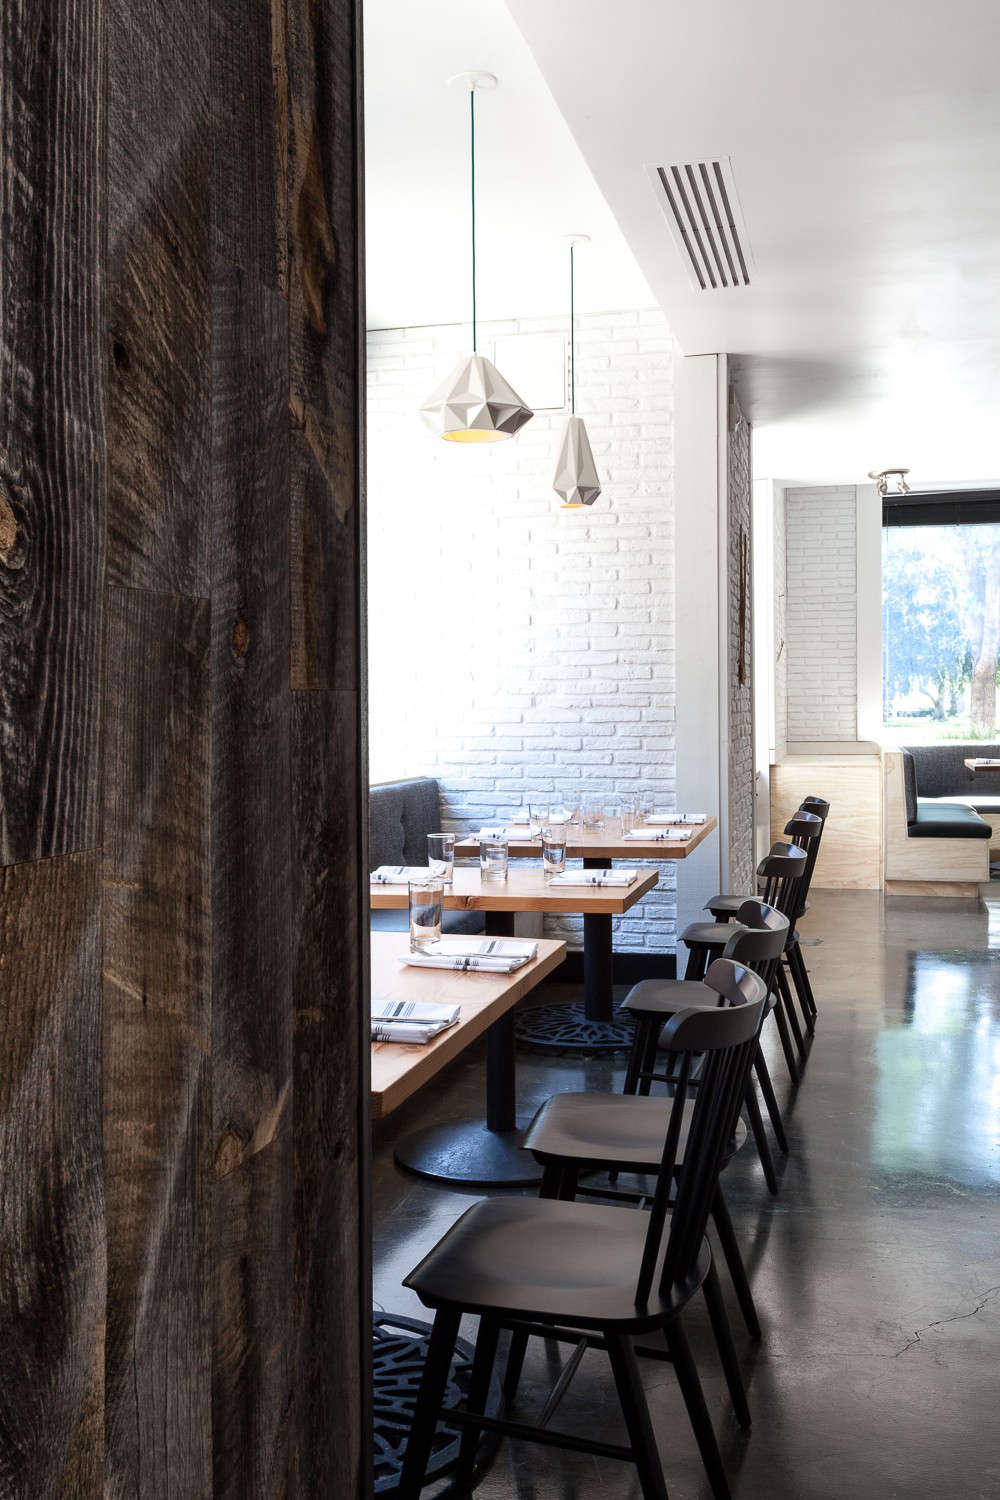 Hock Farm Restaurant with Black Windsor Chairs and Concrete Floor